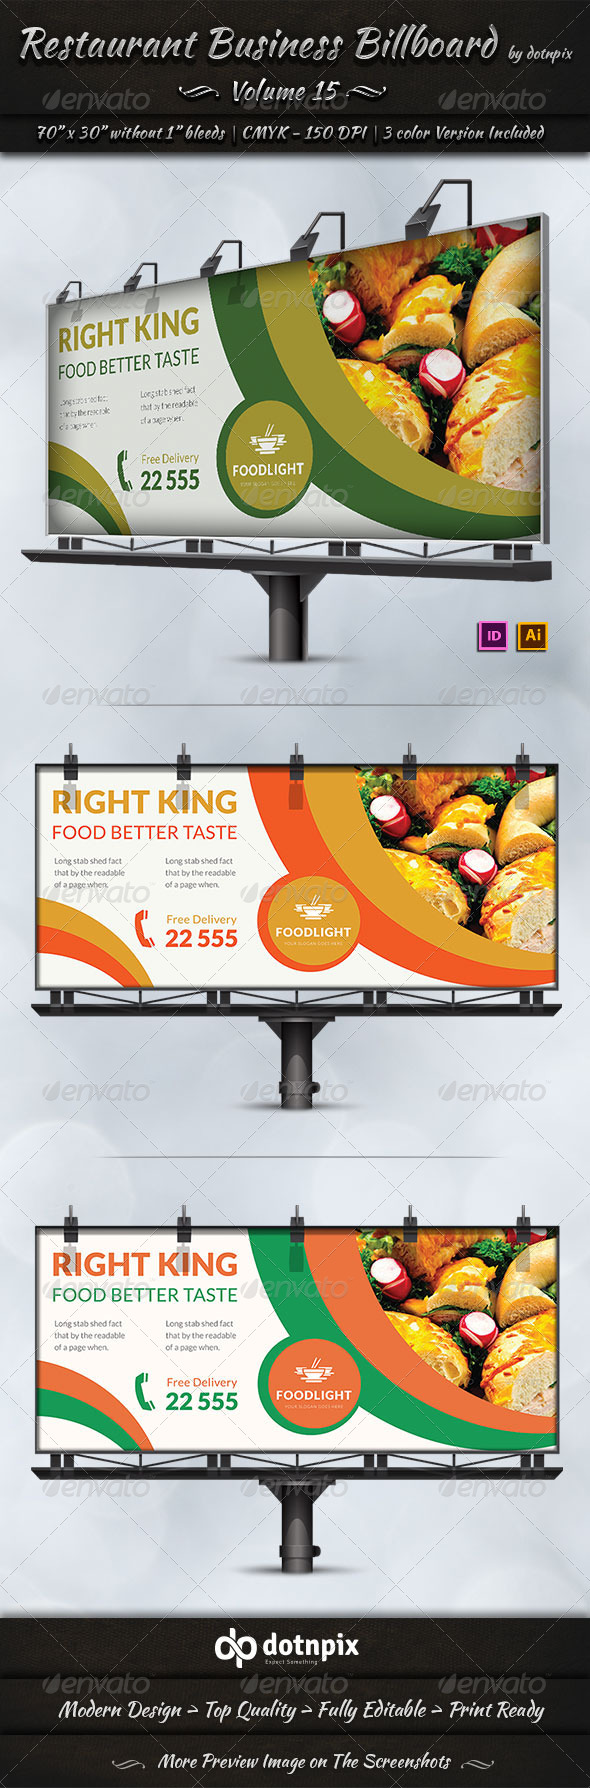 Restaurant Business Billboard Volume 15